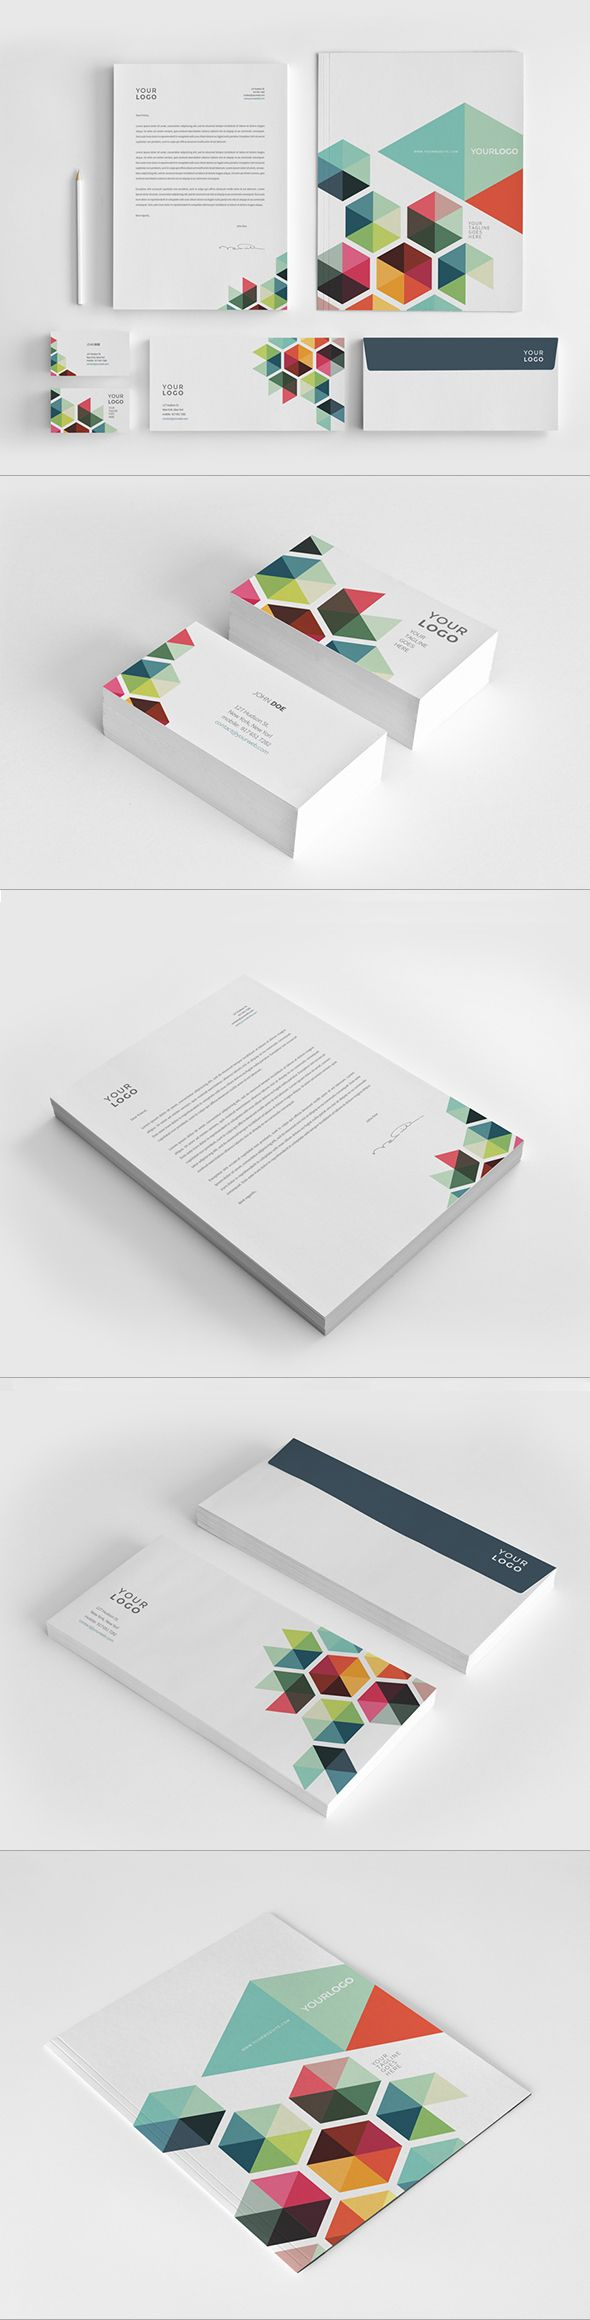 Business colorful stationery template.  Abra Design - Argentina.  The colorful geometric shapes provide a clean, modern look.  All identity pieces work well as a cohesive unit.